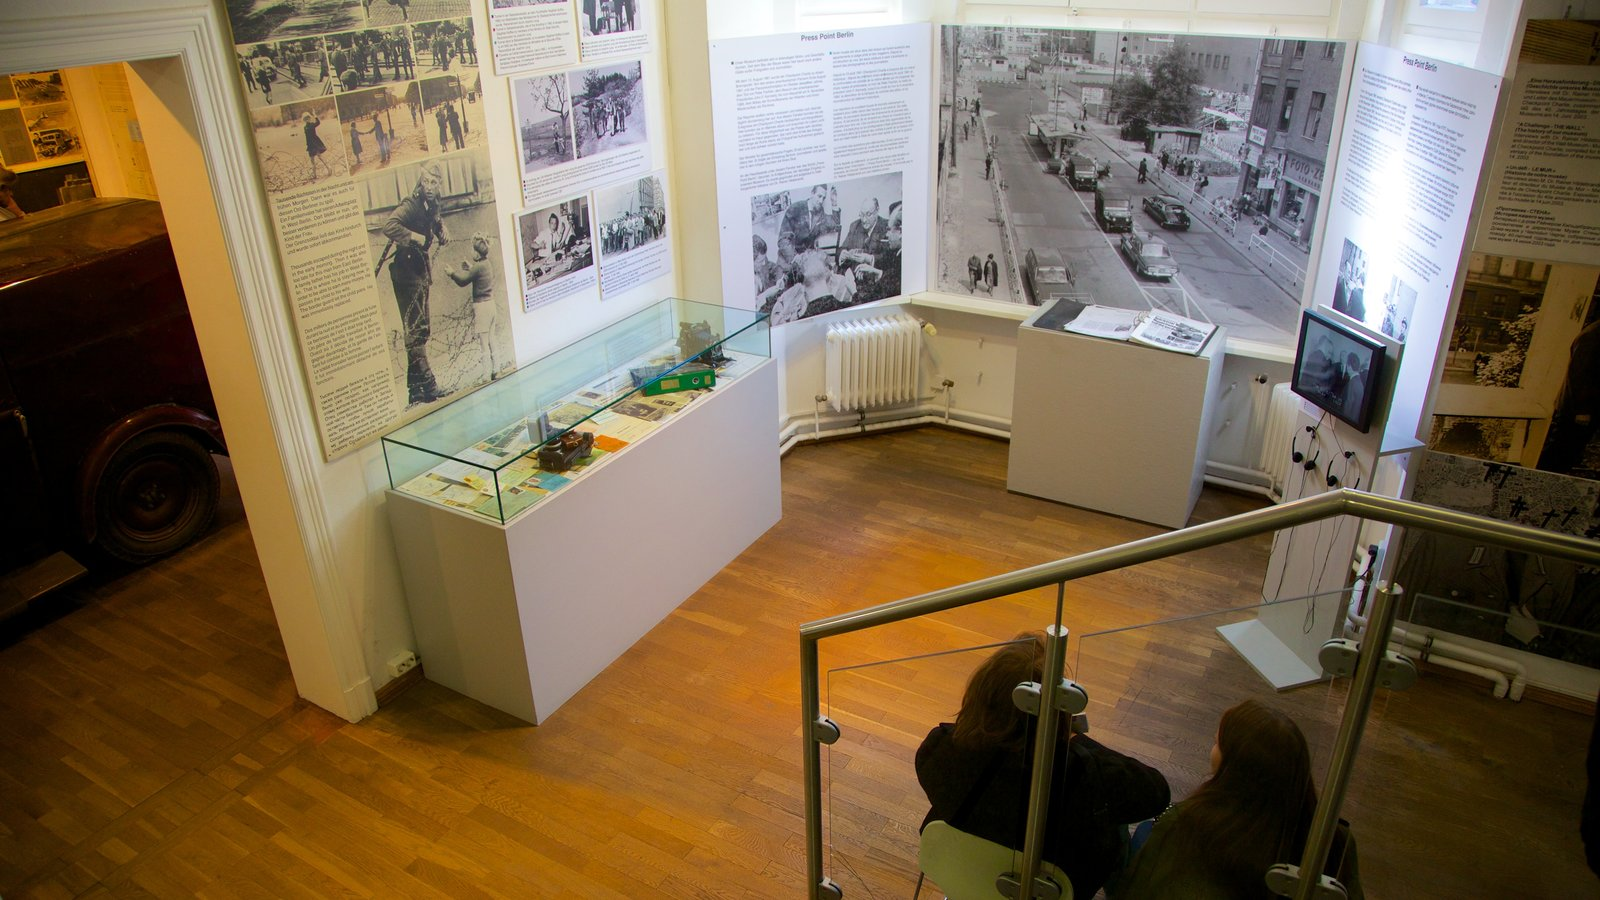 Checkpoint Charlie Museum which includes interior views